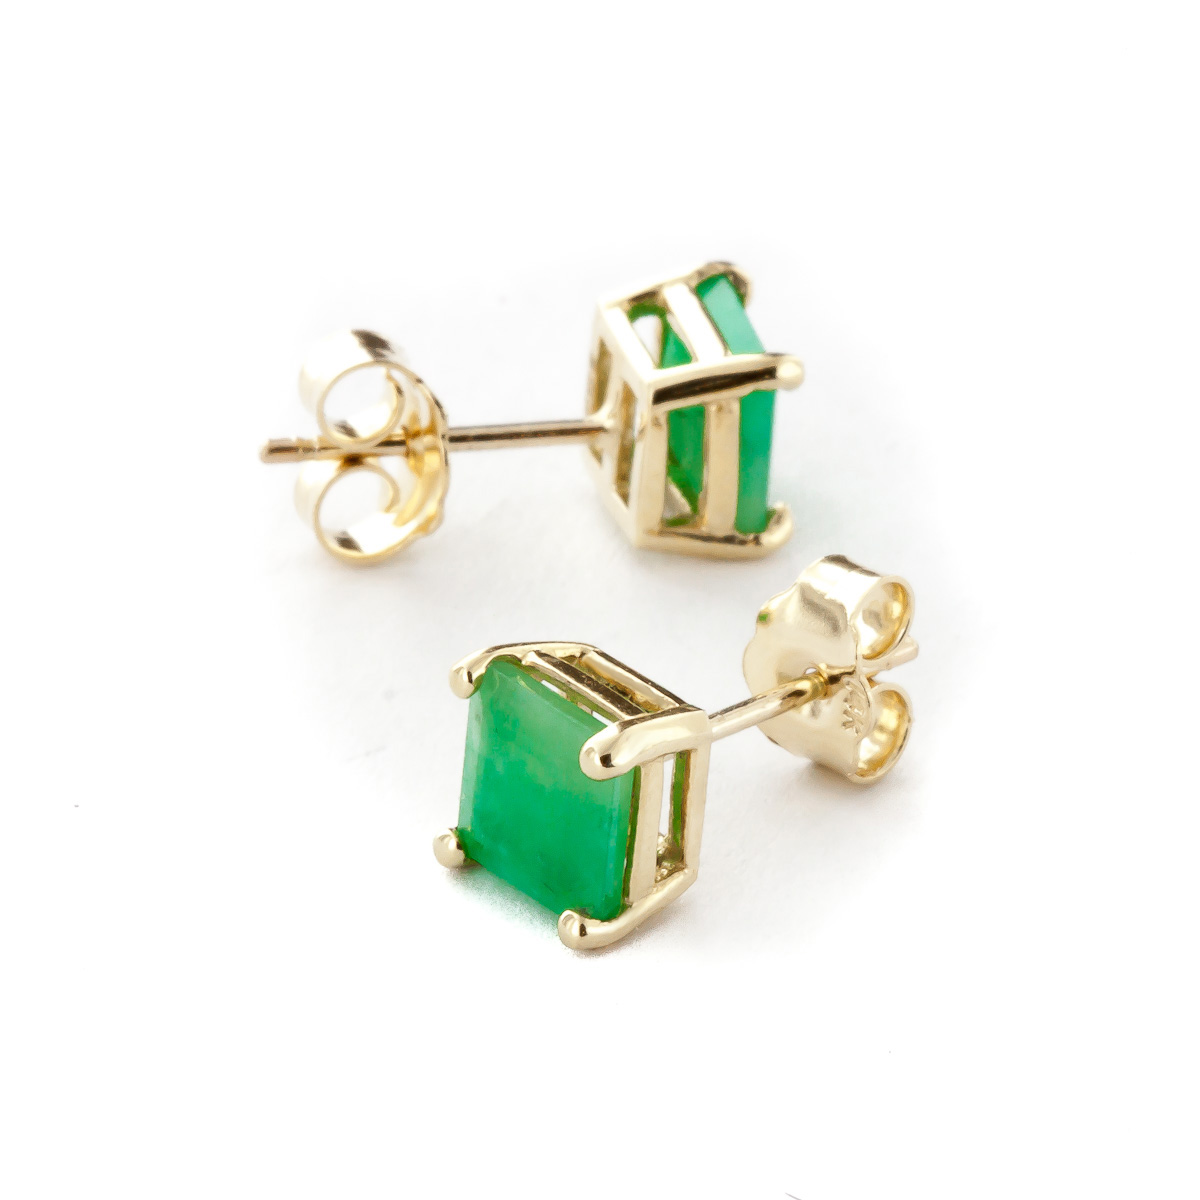 Emerald Stud Earrings 2.9ctw in 9ct Gold